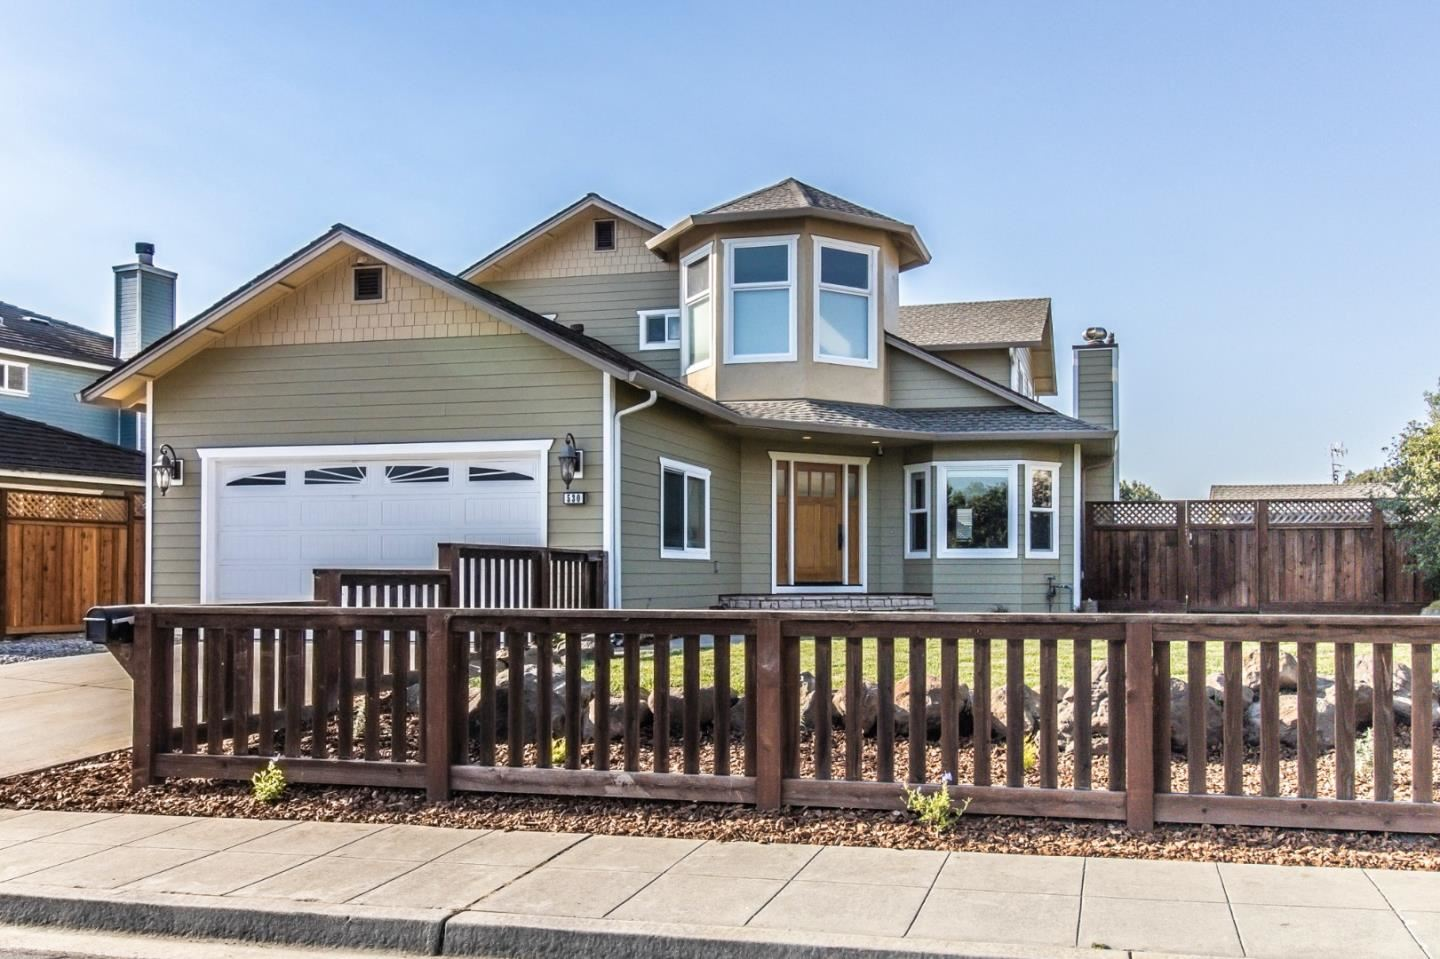 Photo for 530 Silver AVE, HALF MOON BAY, CA 94019 (MLS # ML81818945)